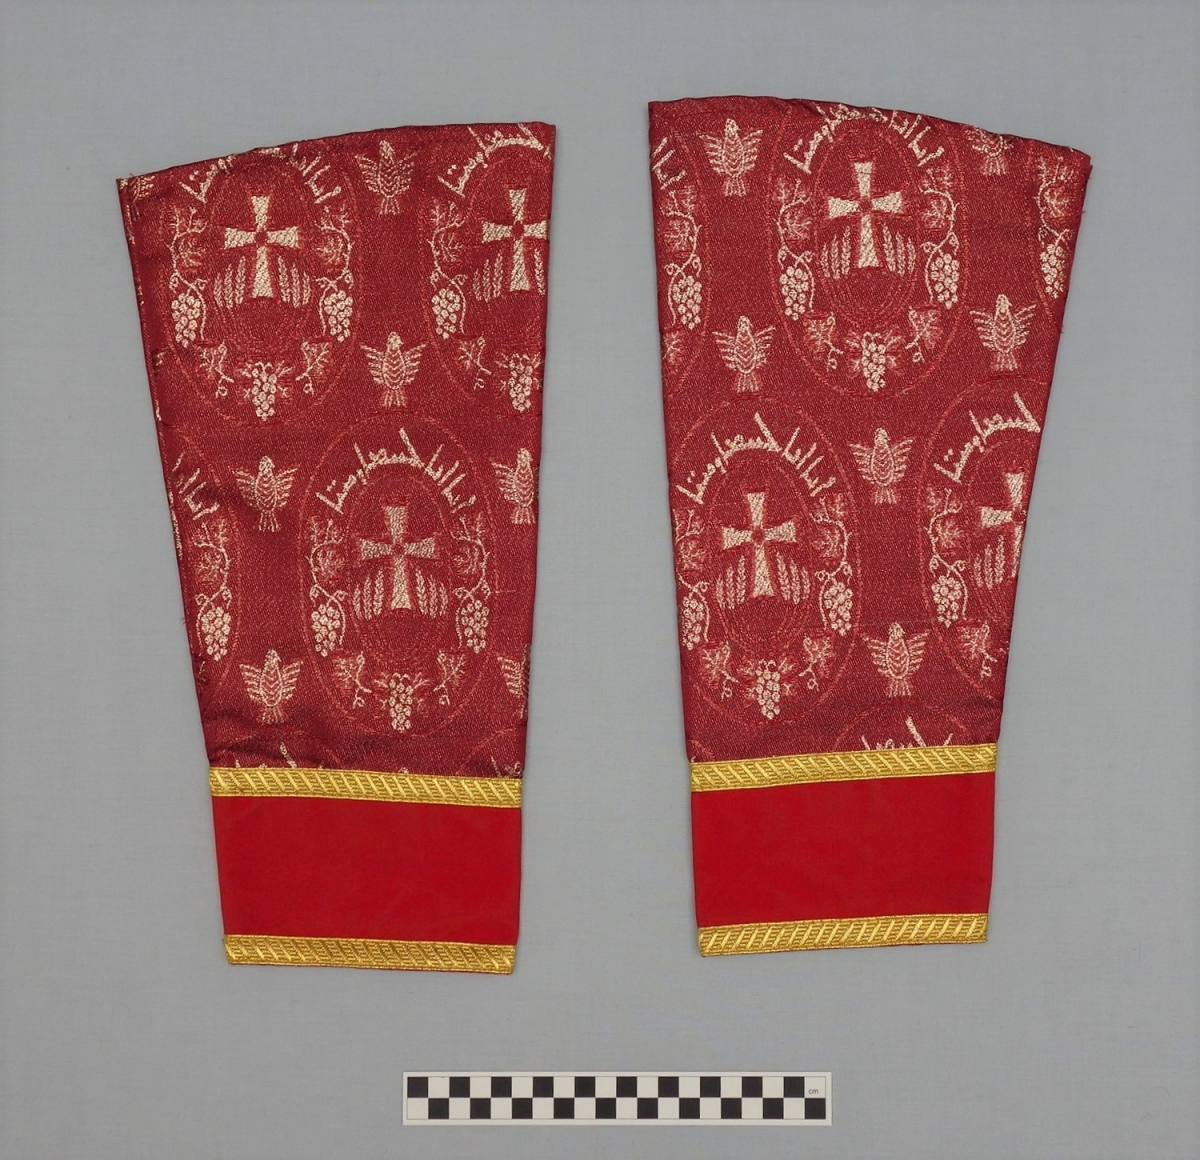 Pair of priestly sleeves worn during the mass (Turkey, early 21st century).